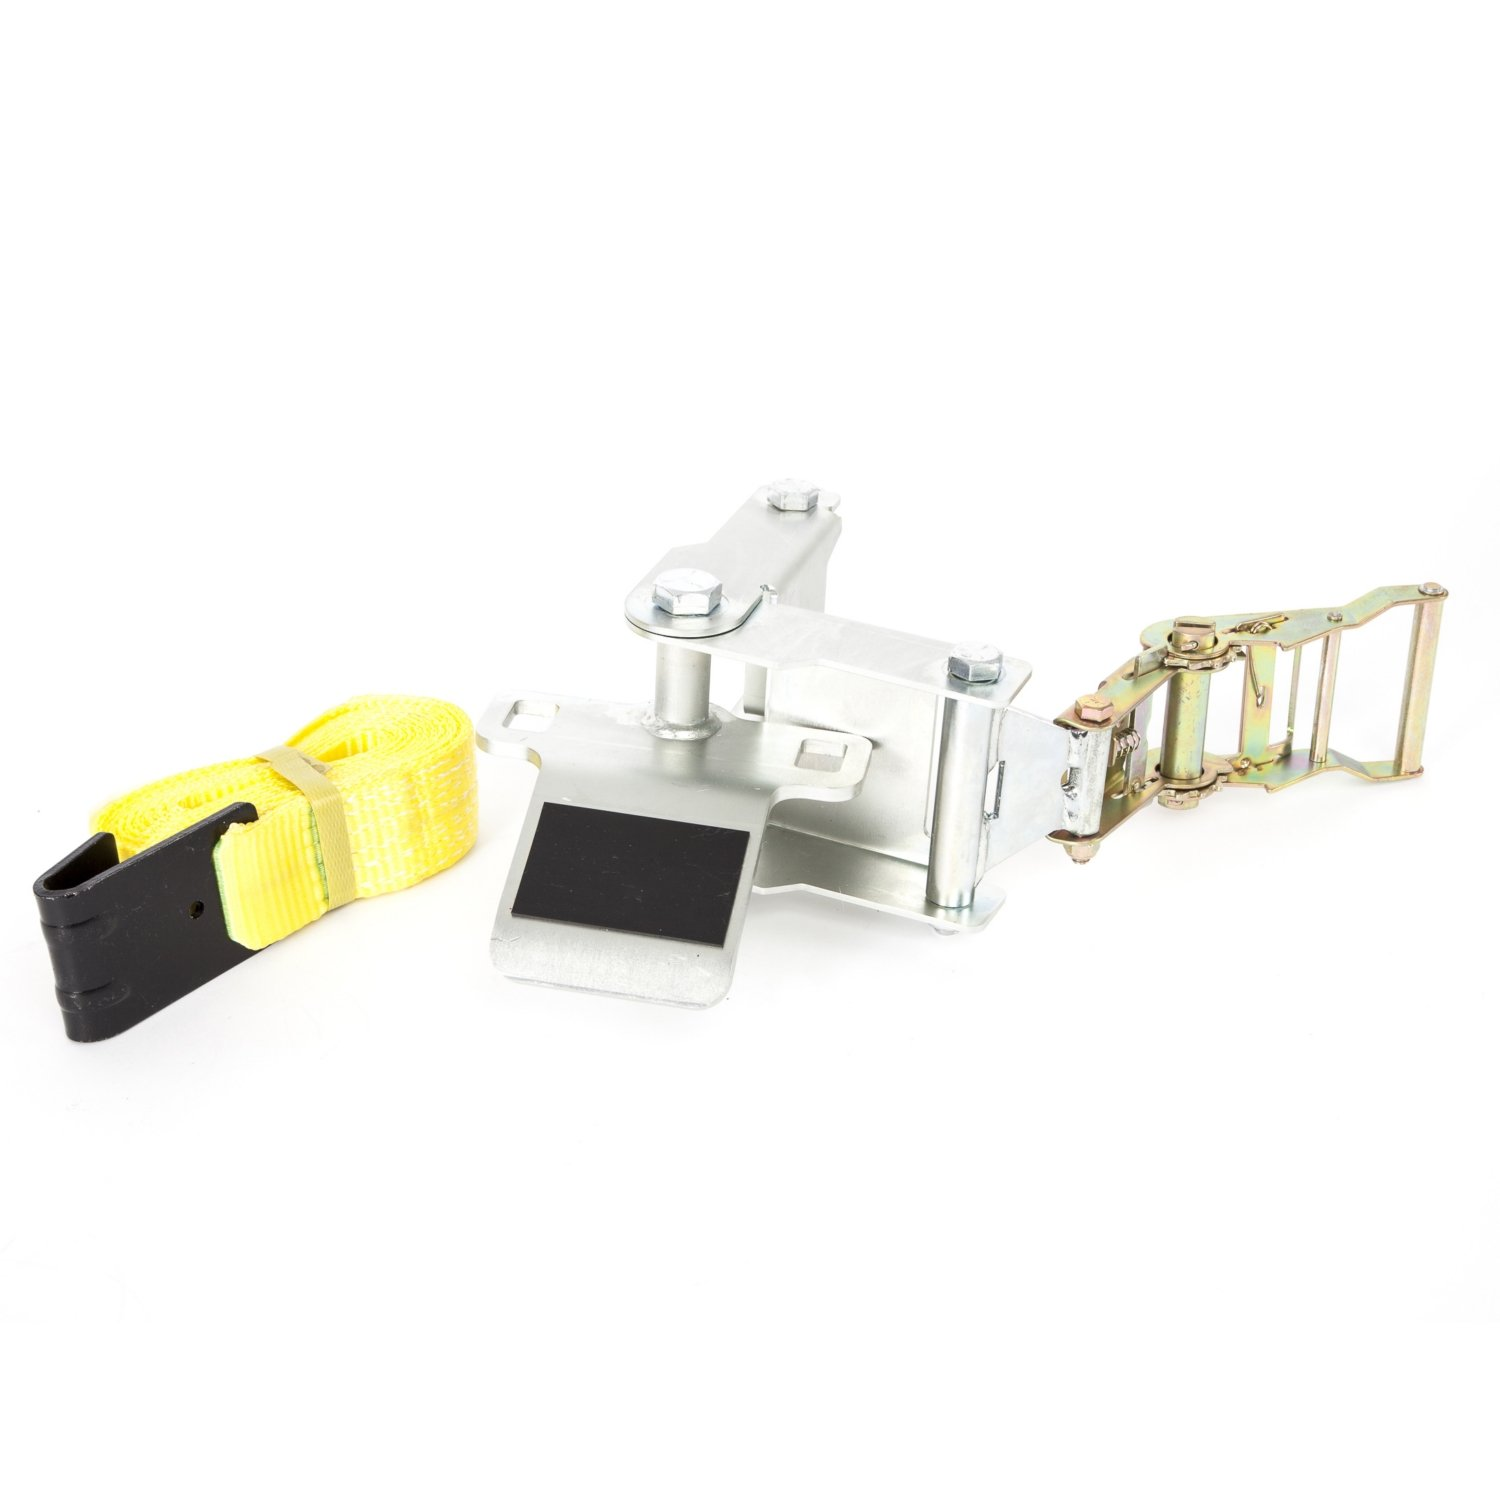 Portable Winch PCA-1269 Tree Mount Winch Anchor with Strap by Portable Winch Co.